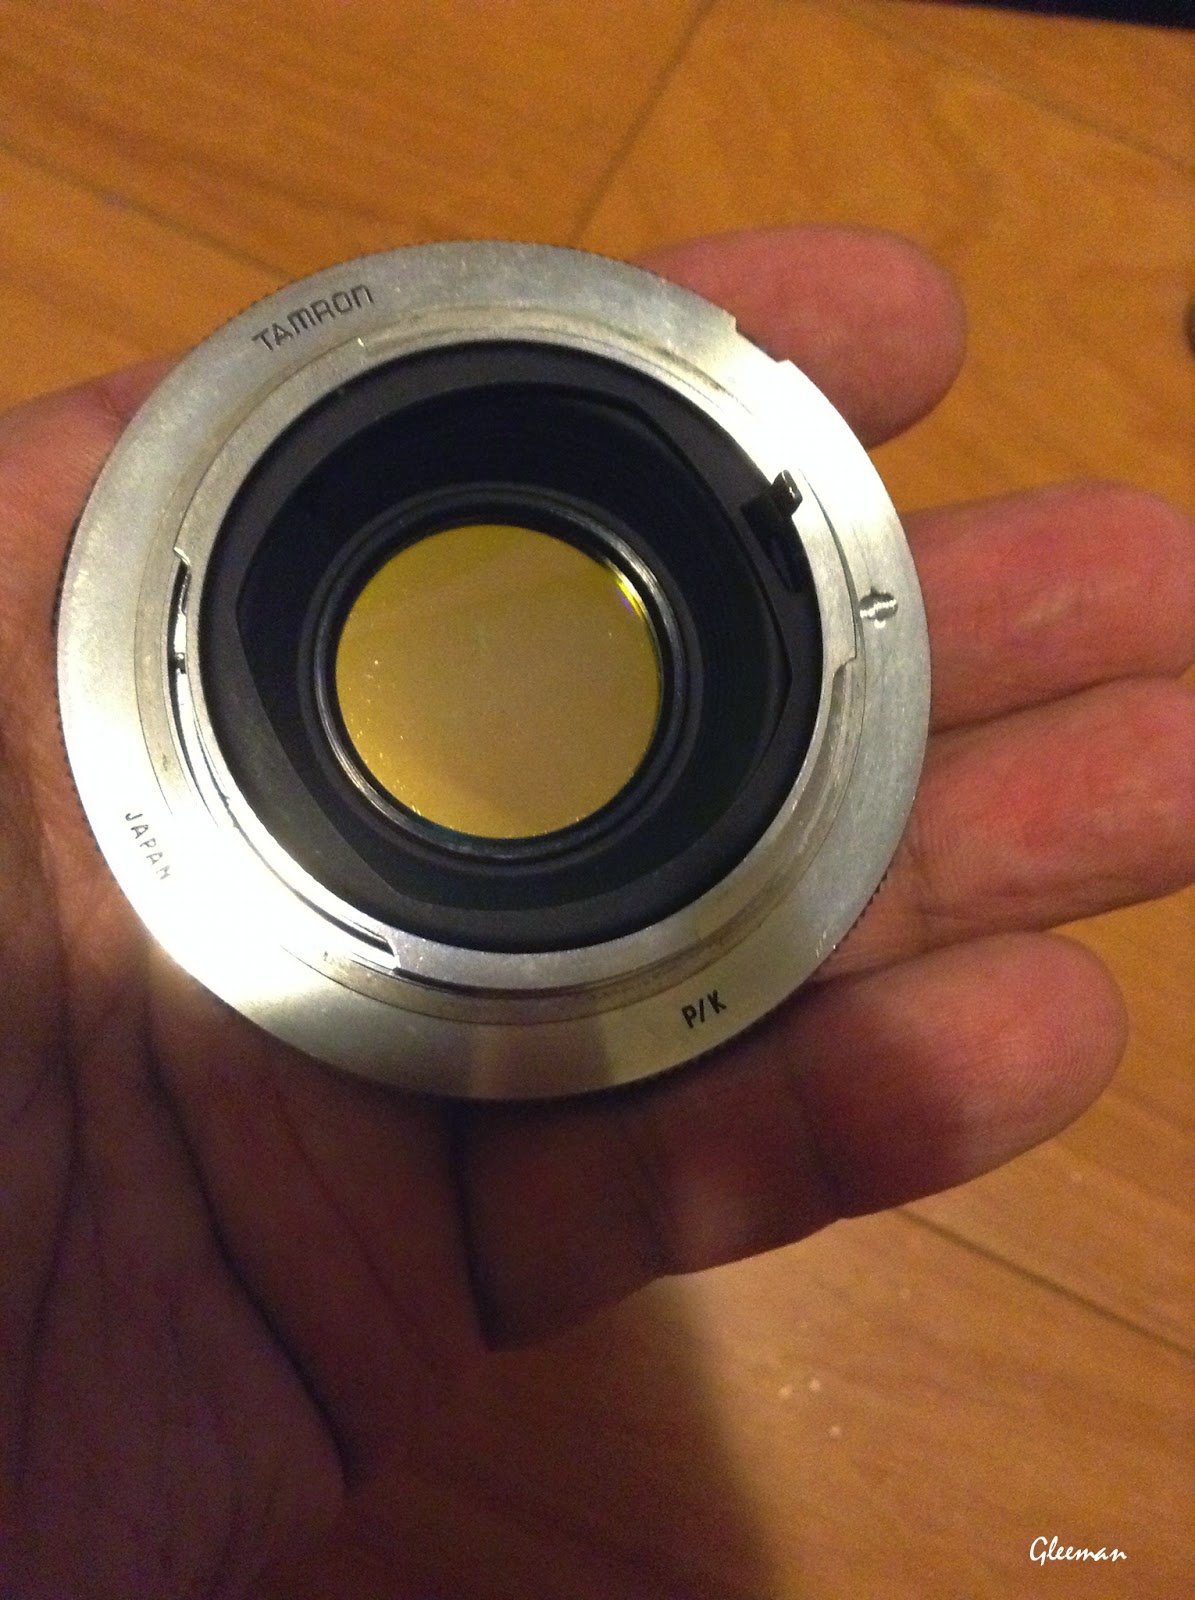 "1.25"" filter in Adapter ring for Tamron Adaptall-2 後置光害濾鏡"